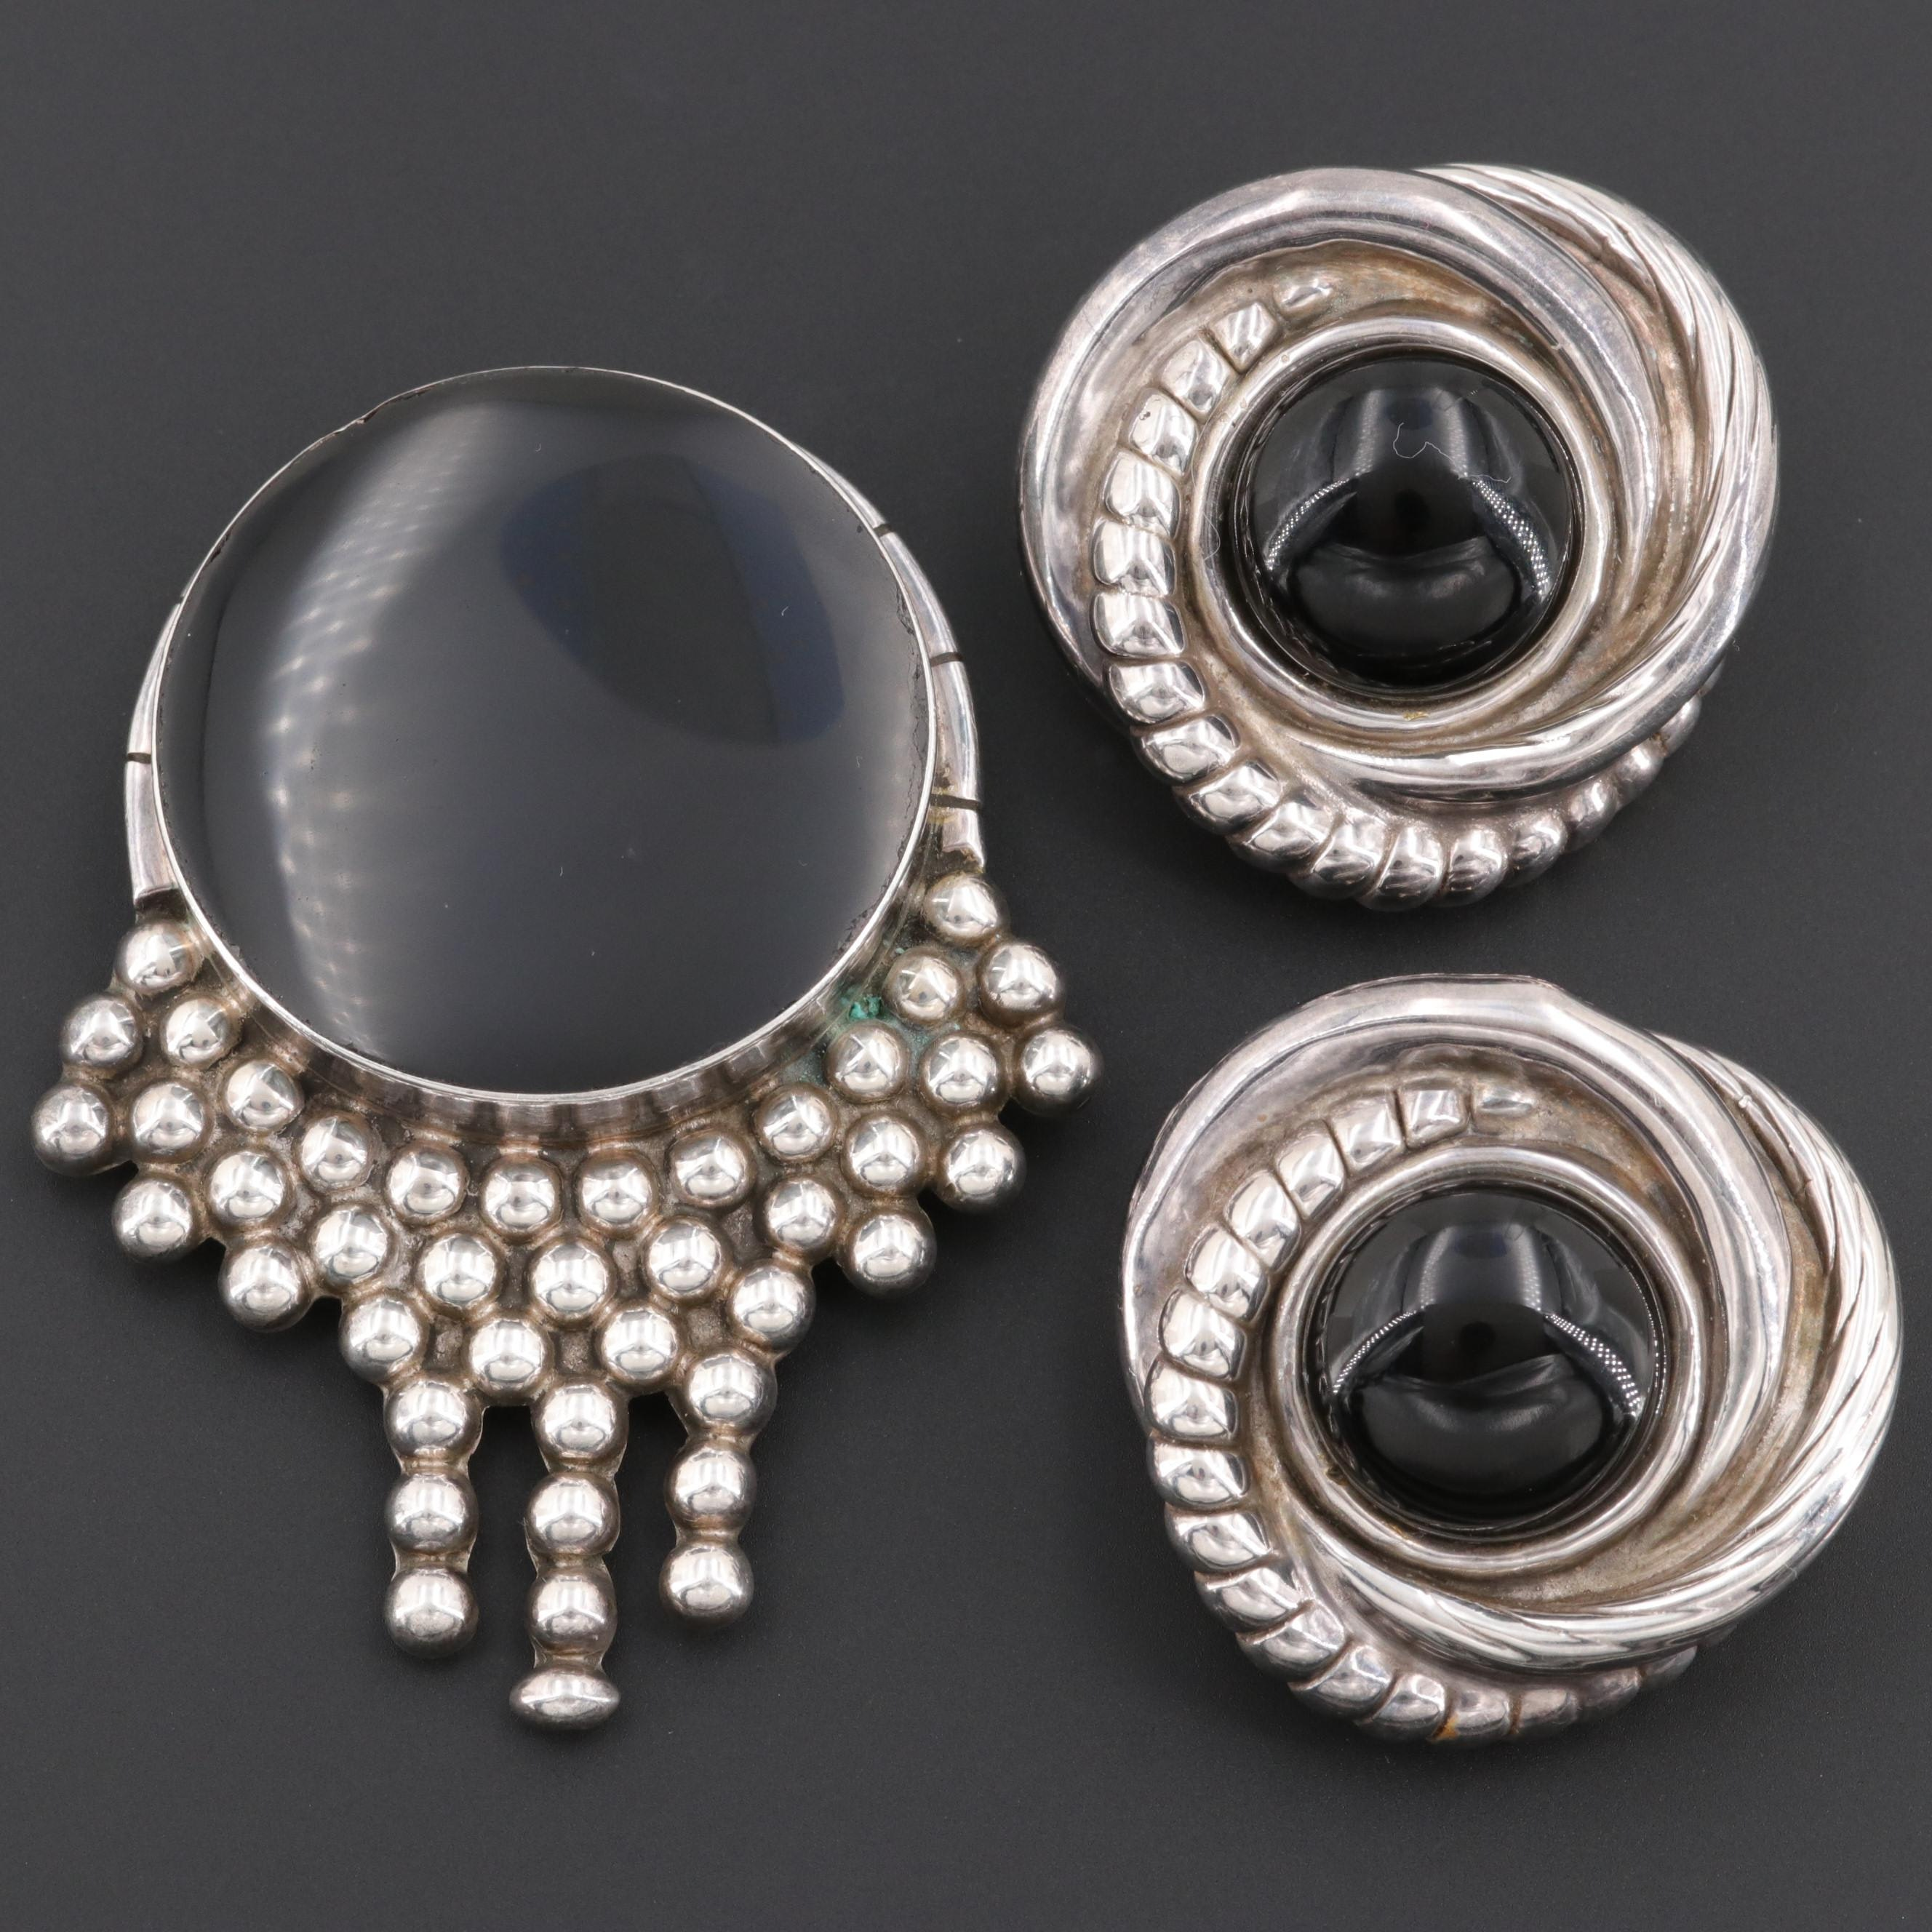 Mexican Sterling Silver Obsidian and Black Onyx Brooch and Clip On Earrings